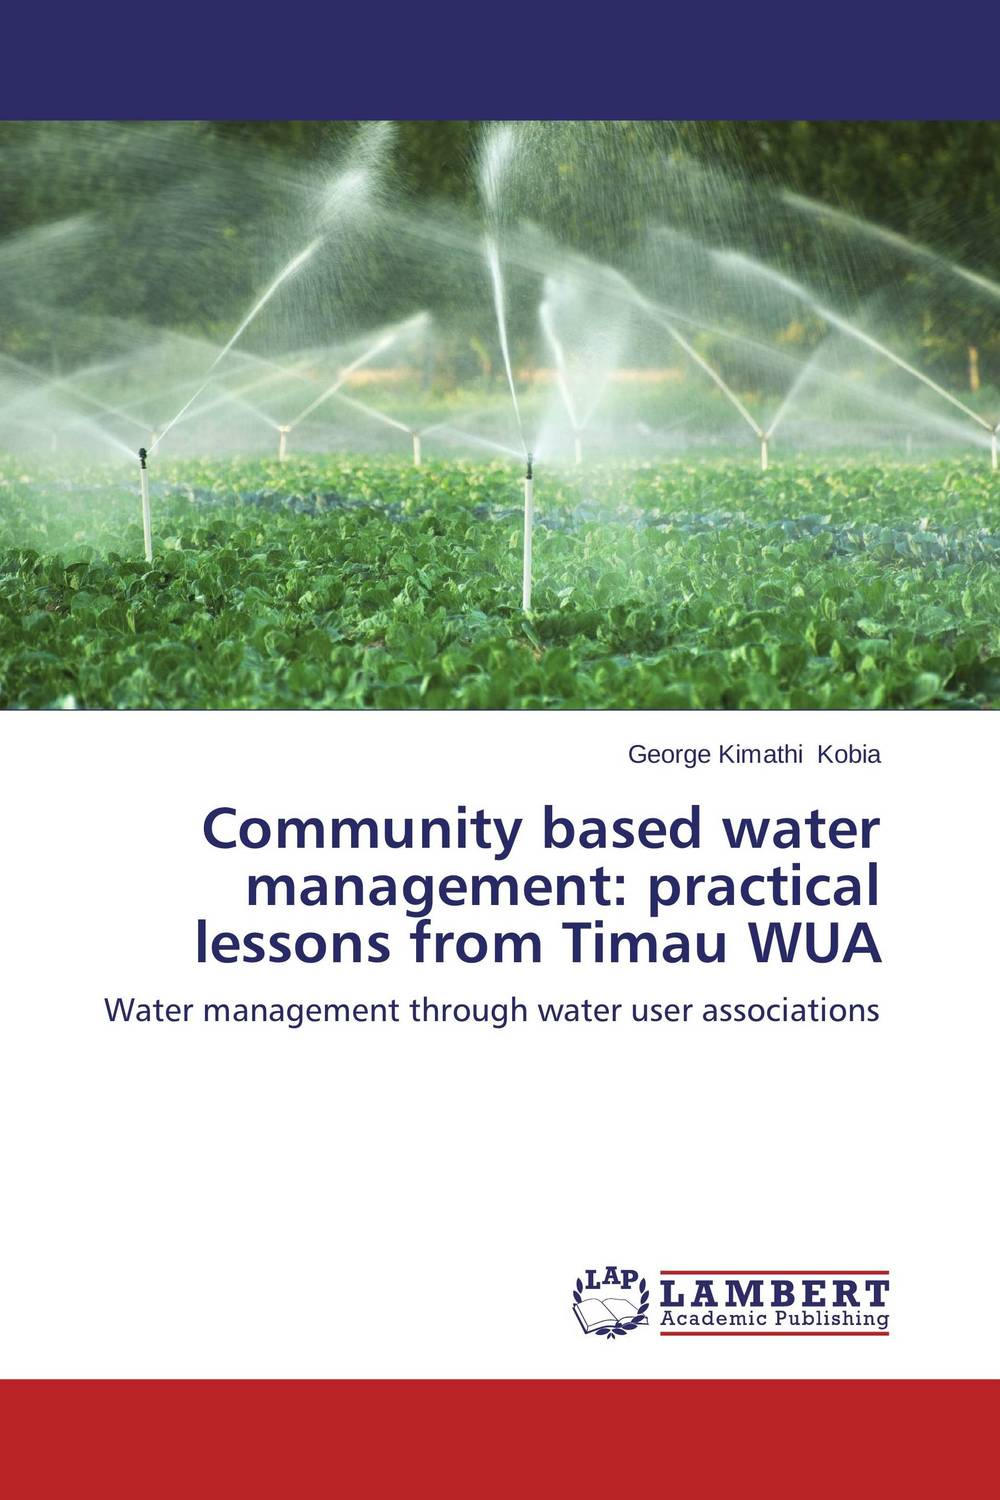 Community based water management: practical lessons from Timau WUA community spate irrigation in raya valley